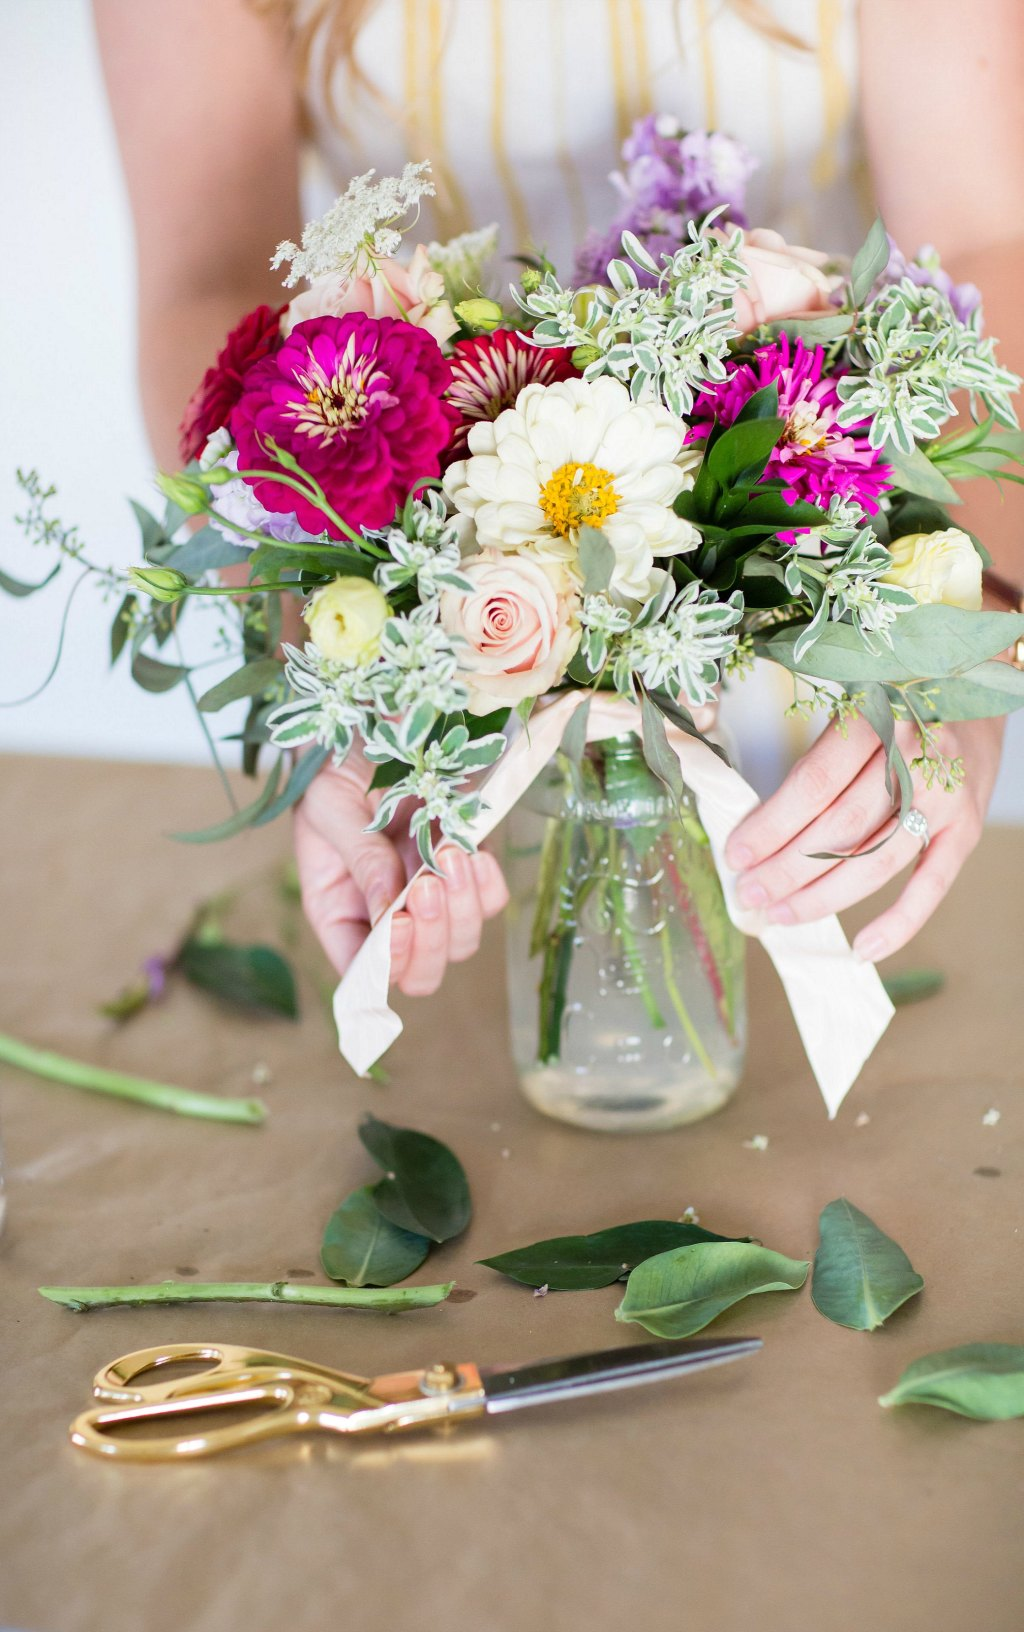 how-to-style-a-simple-flower-arrangement-rose-city-style-guide-bourbon-rose-floral-design-co-lifestyle-canadian-blog-17